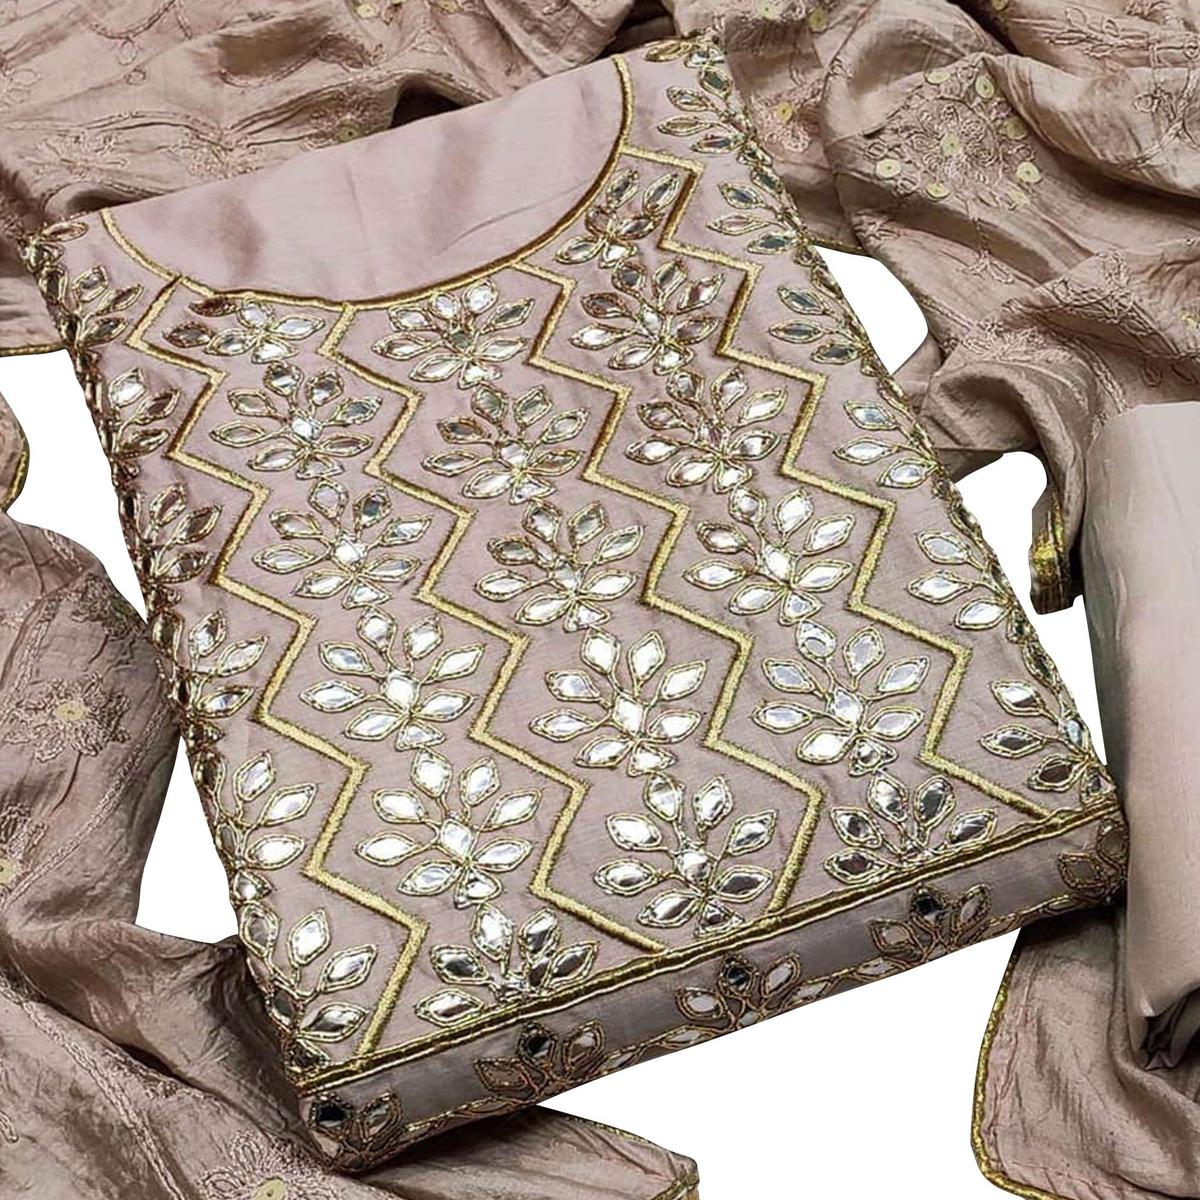 Flamboyant Beige Colored Paartywear Embroidered Chanderi Cotton Dress Material